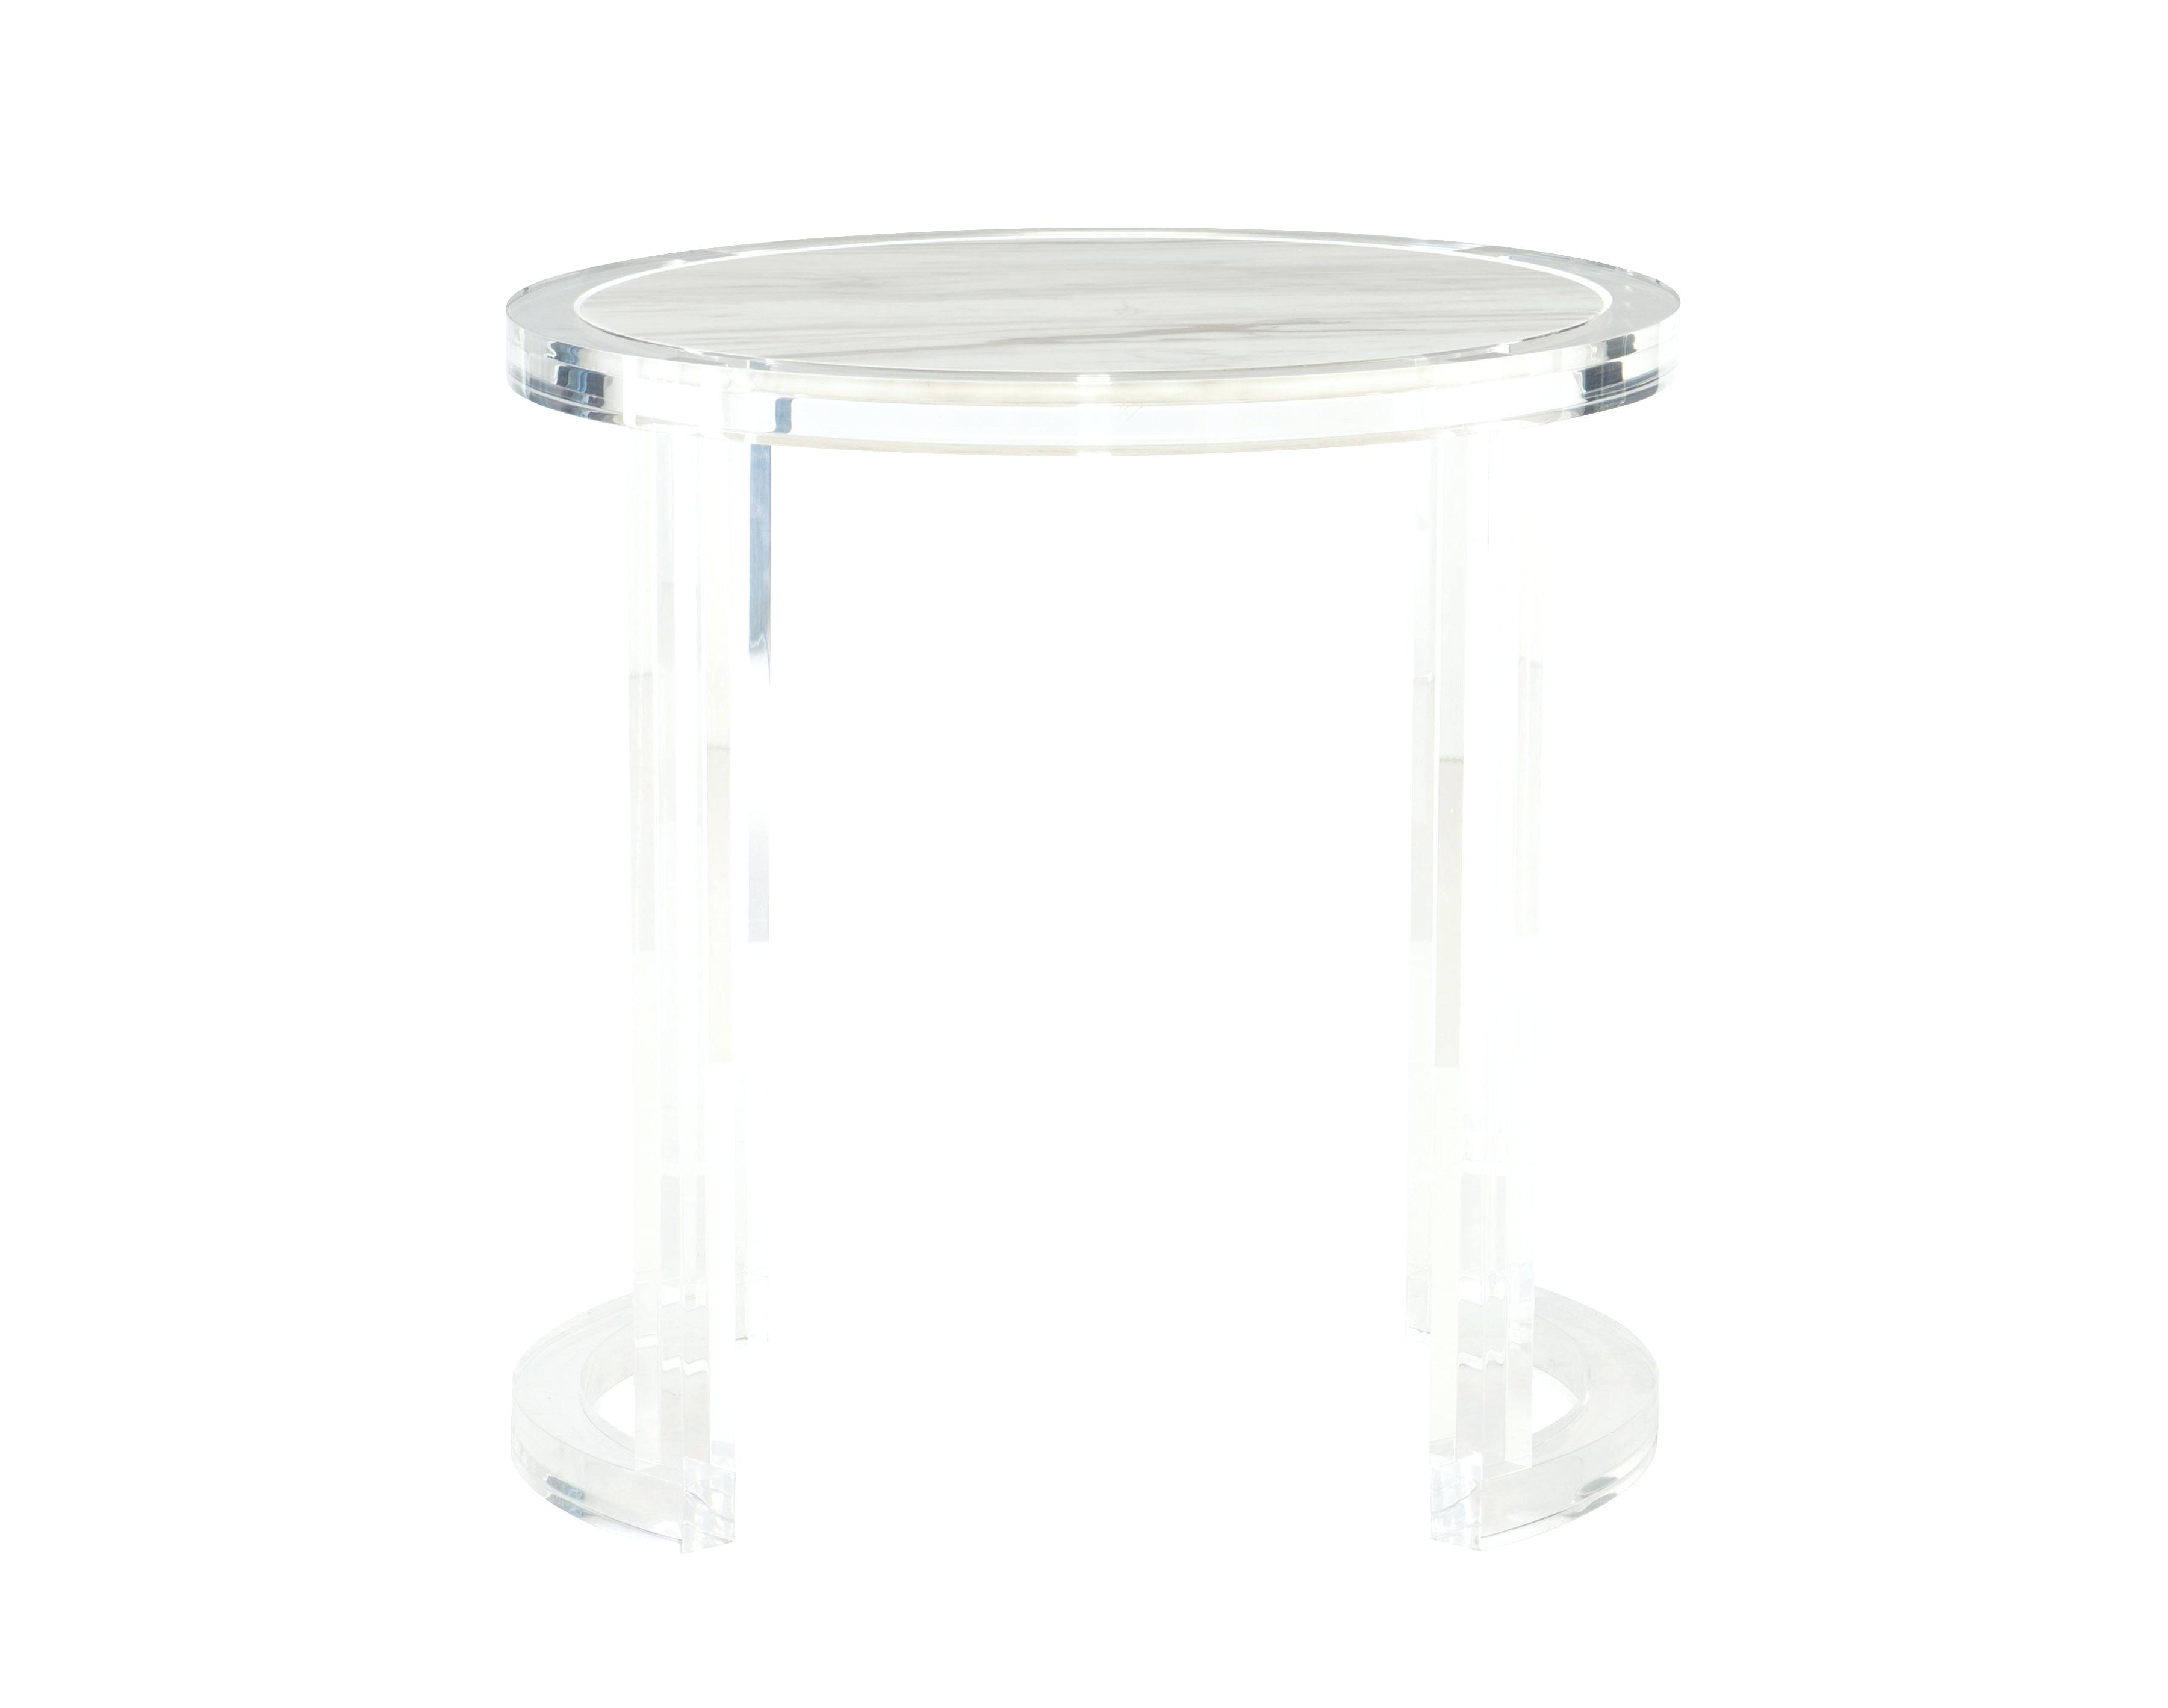 round metal folding tray accent table wrought iron tables side furniture home kitchen licious acrylic end full size trend wooden ashley sectional couch storage trunk brass lamp